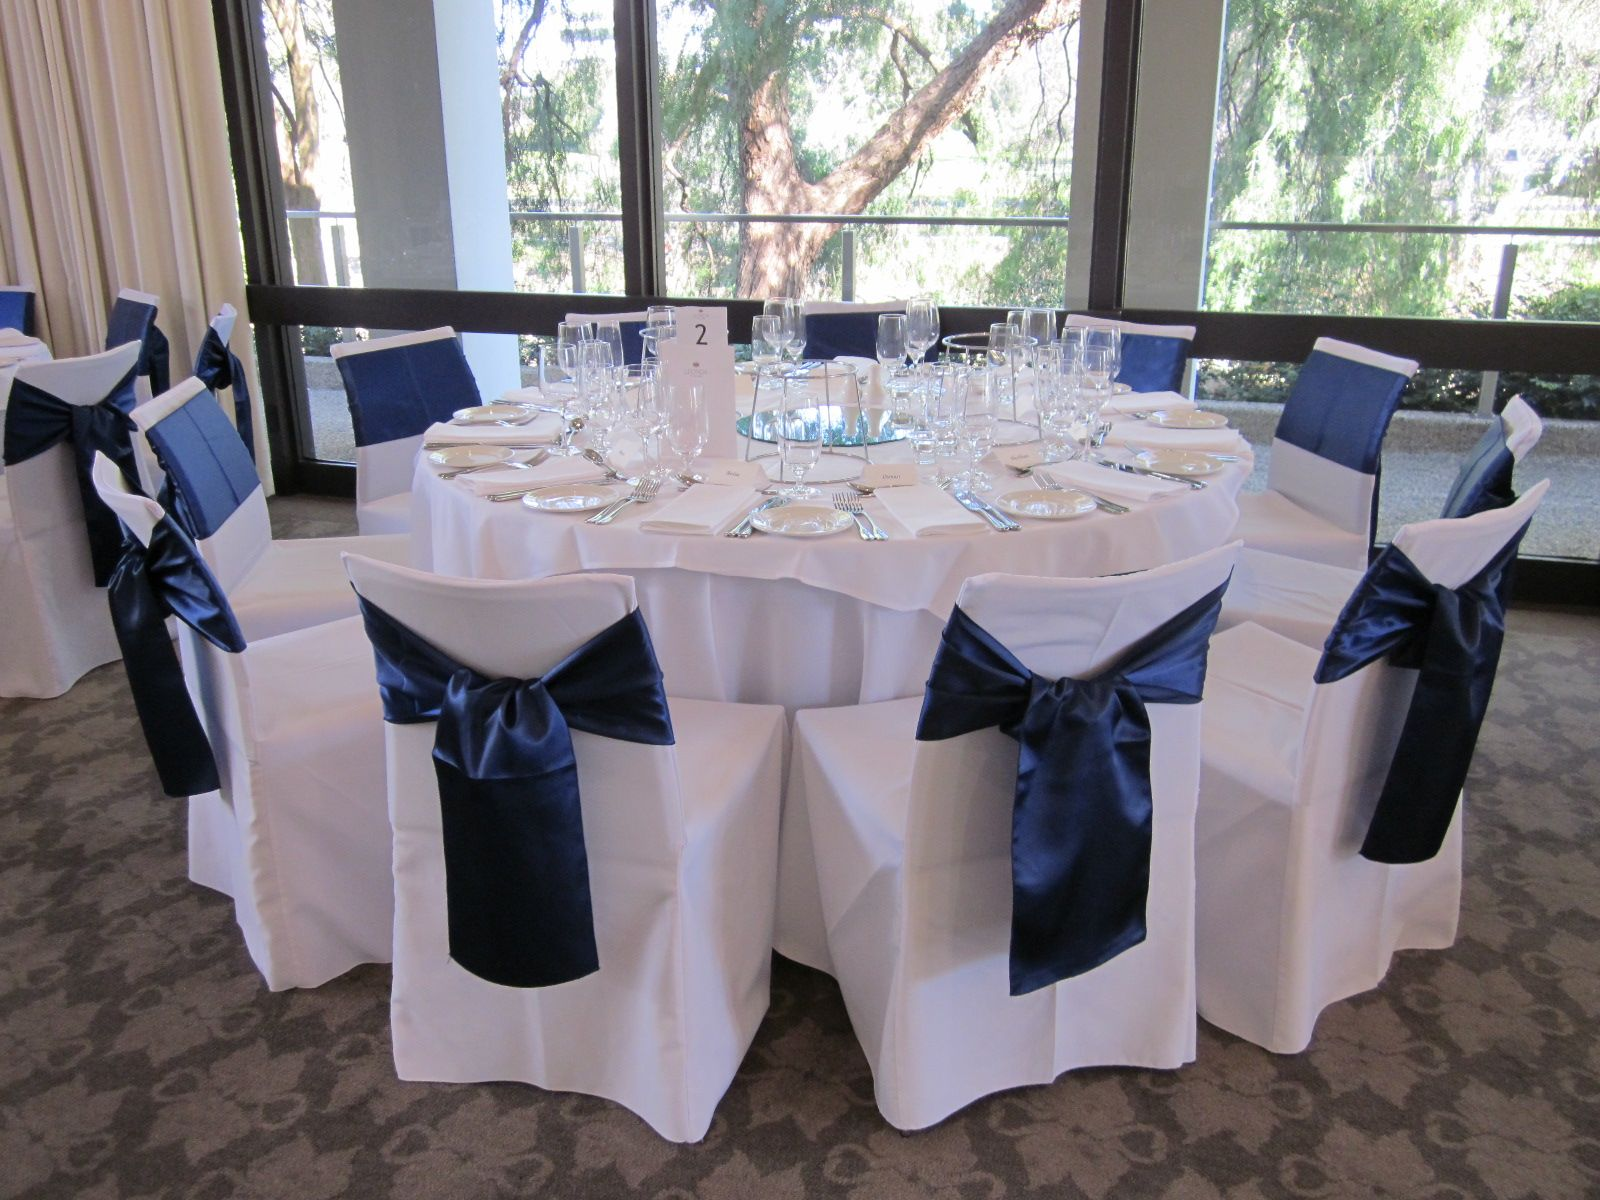 White chair covers with a navy blue satin sash Bouquet